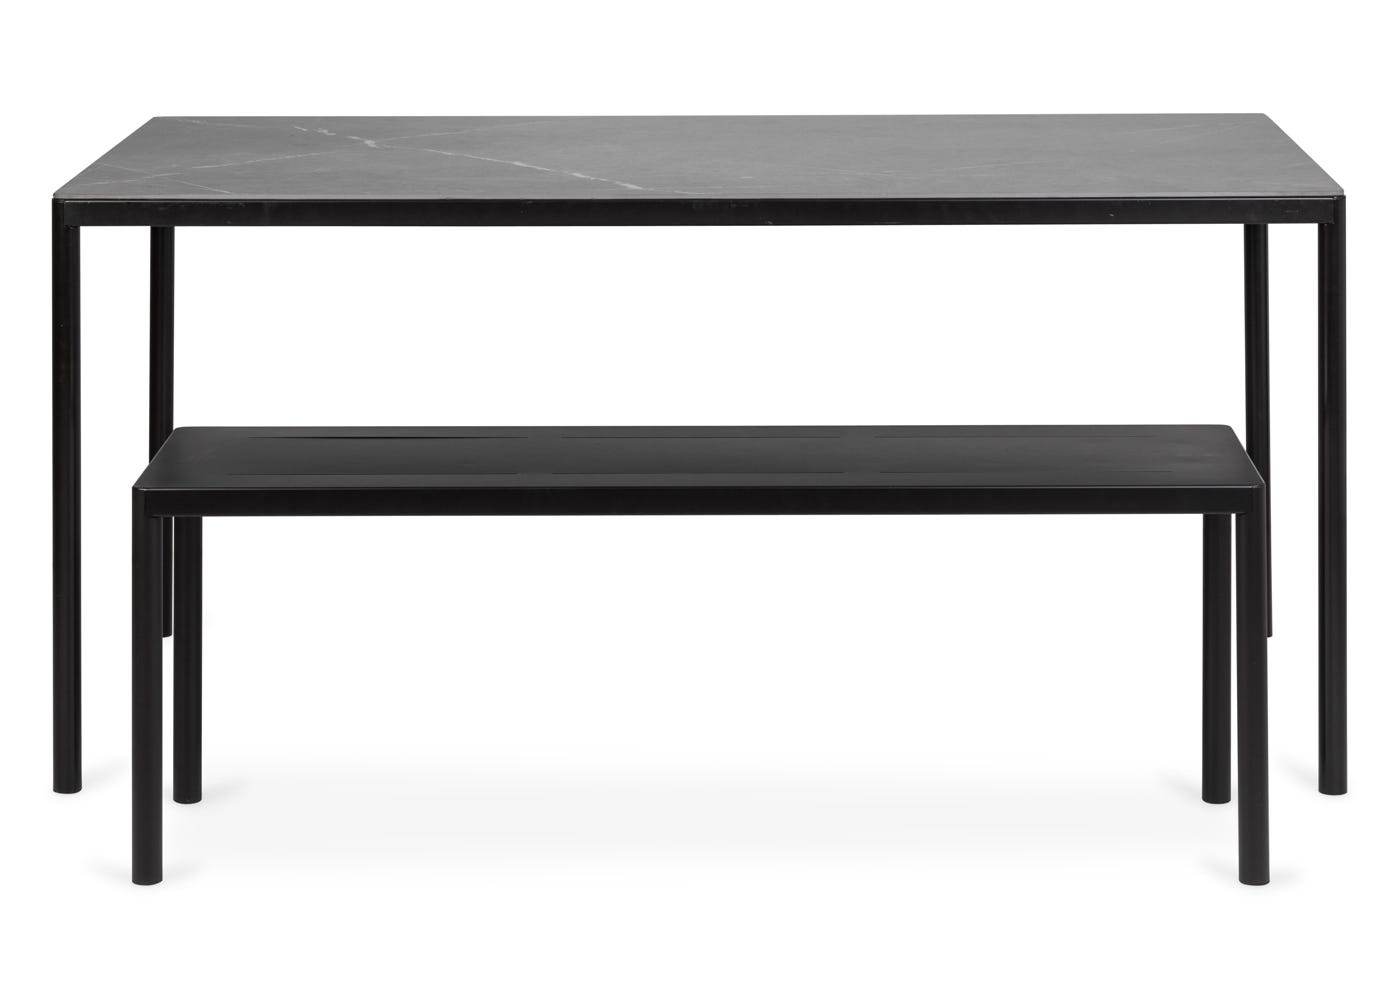 As shown: Petra outdoor table & bench in dark grey (bench sold separately). ;